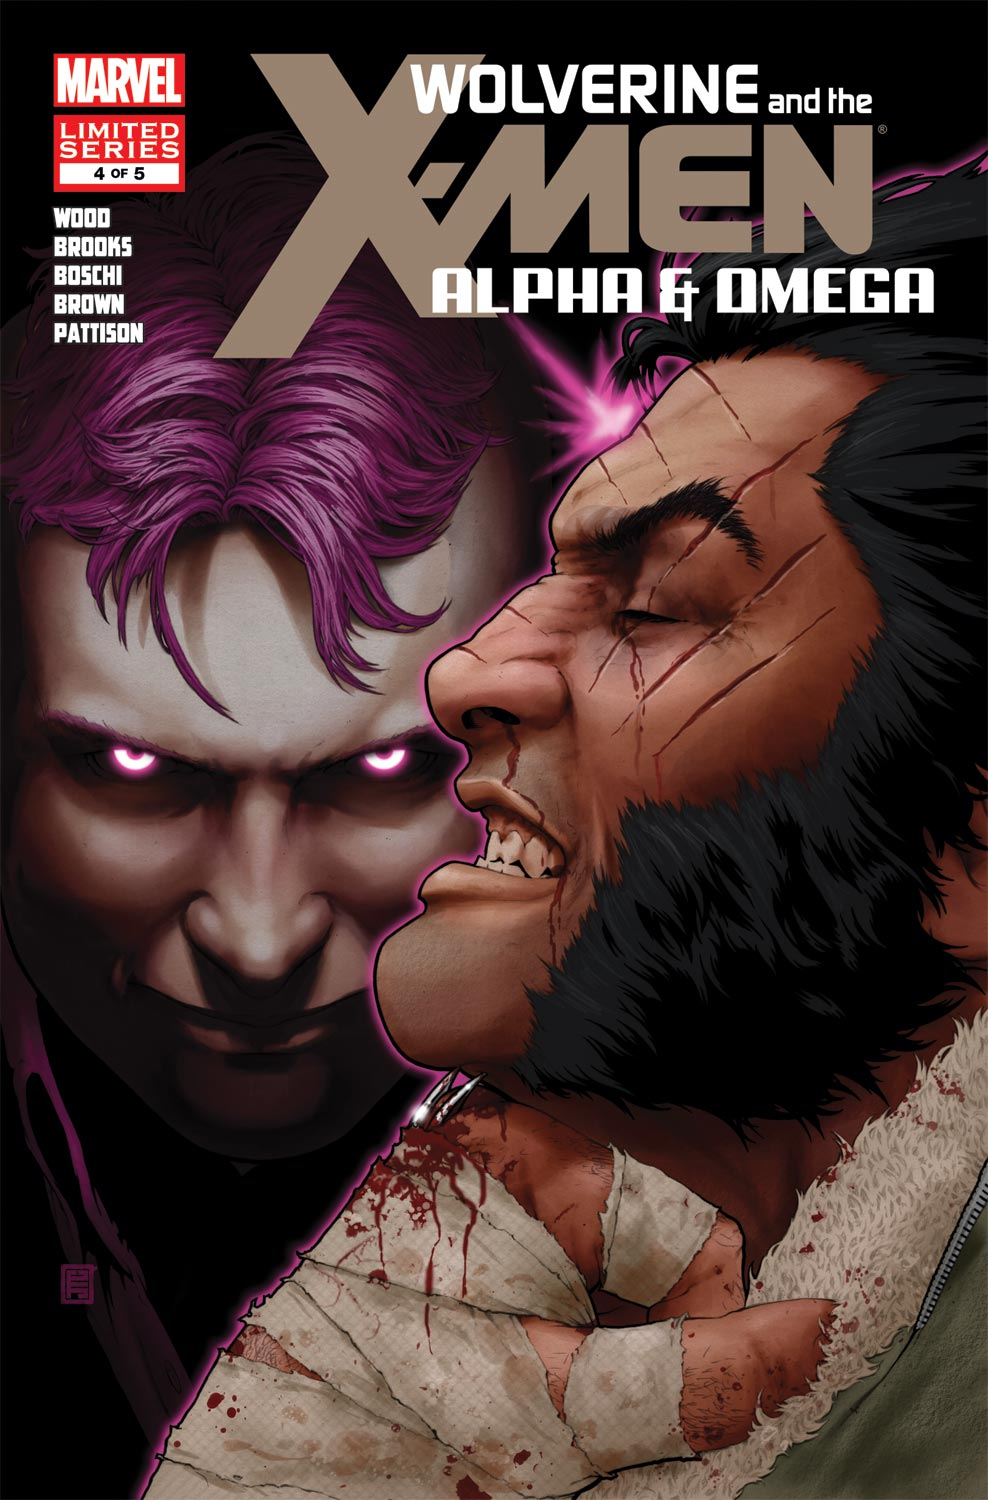 Wolverine & the X-Men: Alpha & Omega (2011) #4